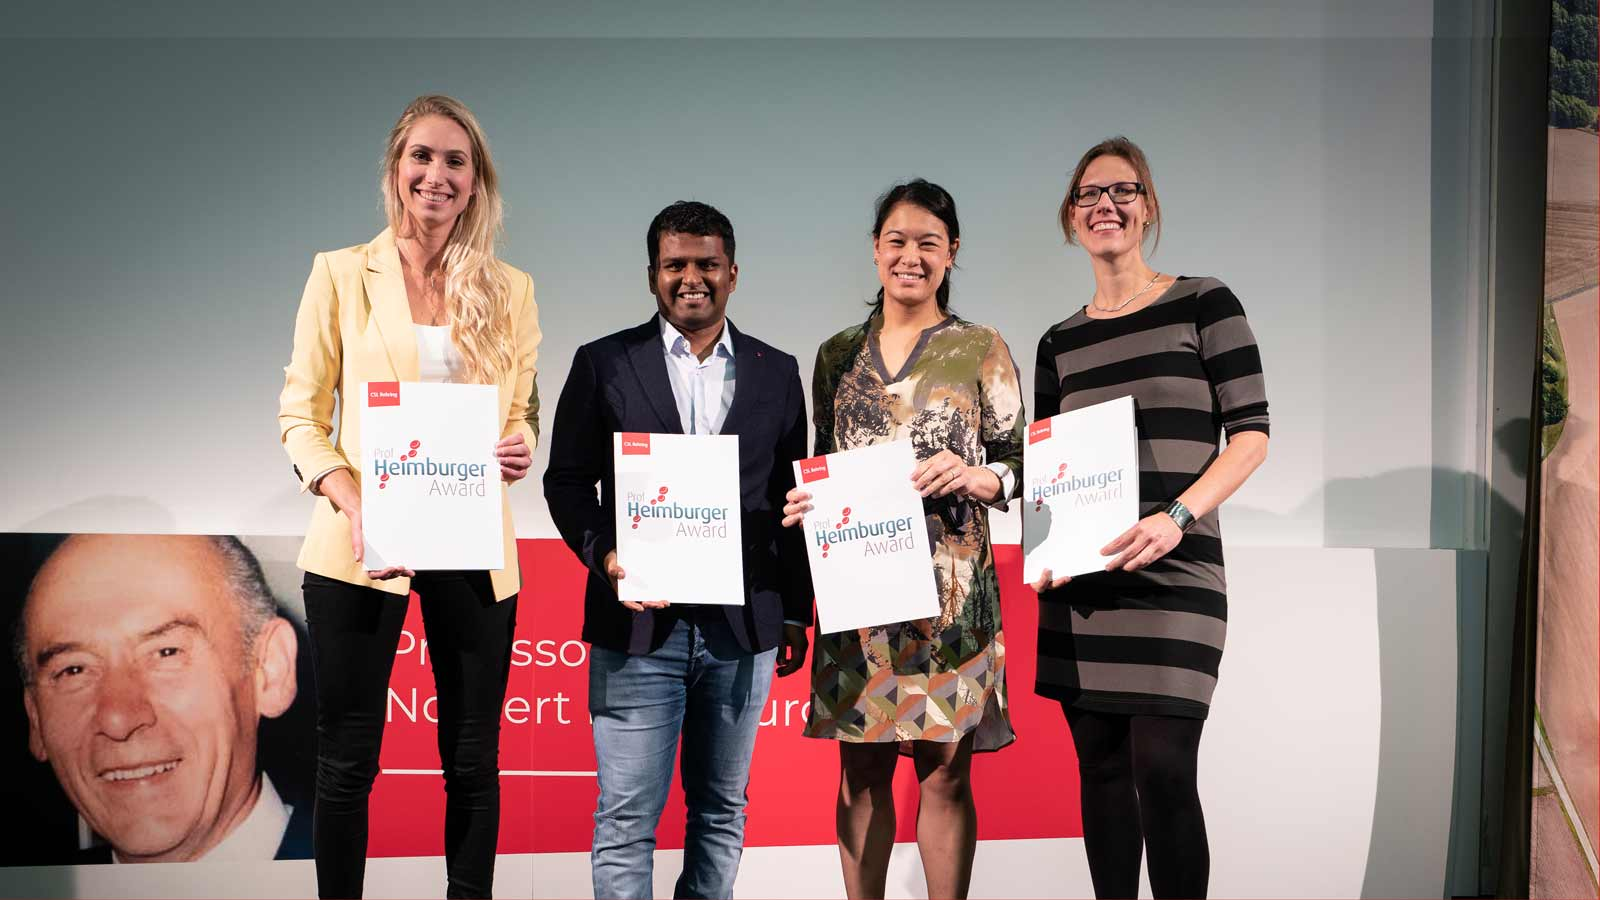 Die Gewinner des Heimburger Awards 2019